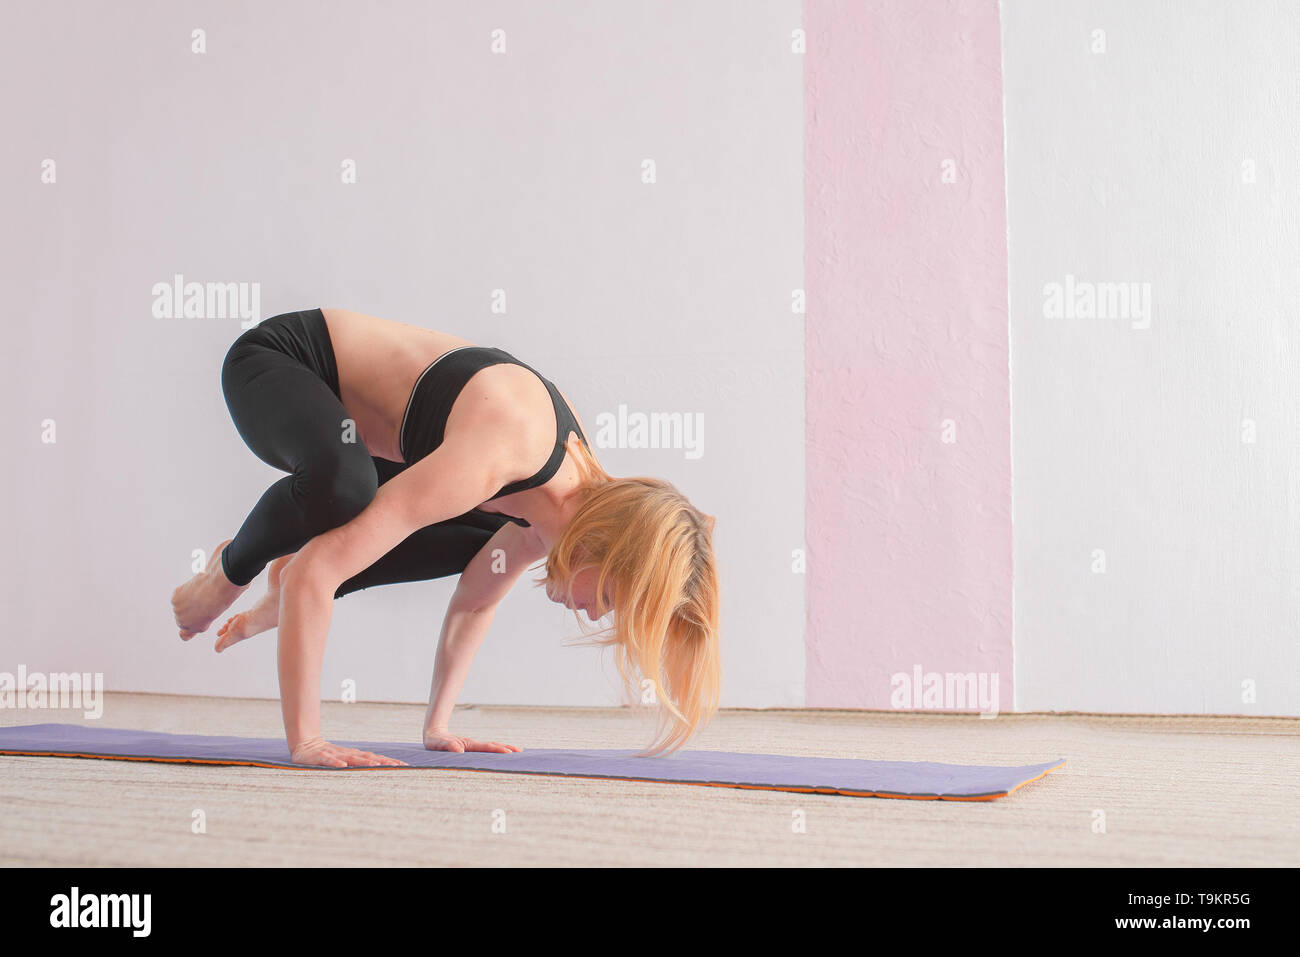 The girl in black sportswear is doing yoga in the gym on the mat. Copy space. - Stock Image